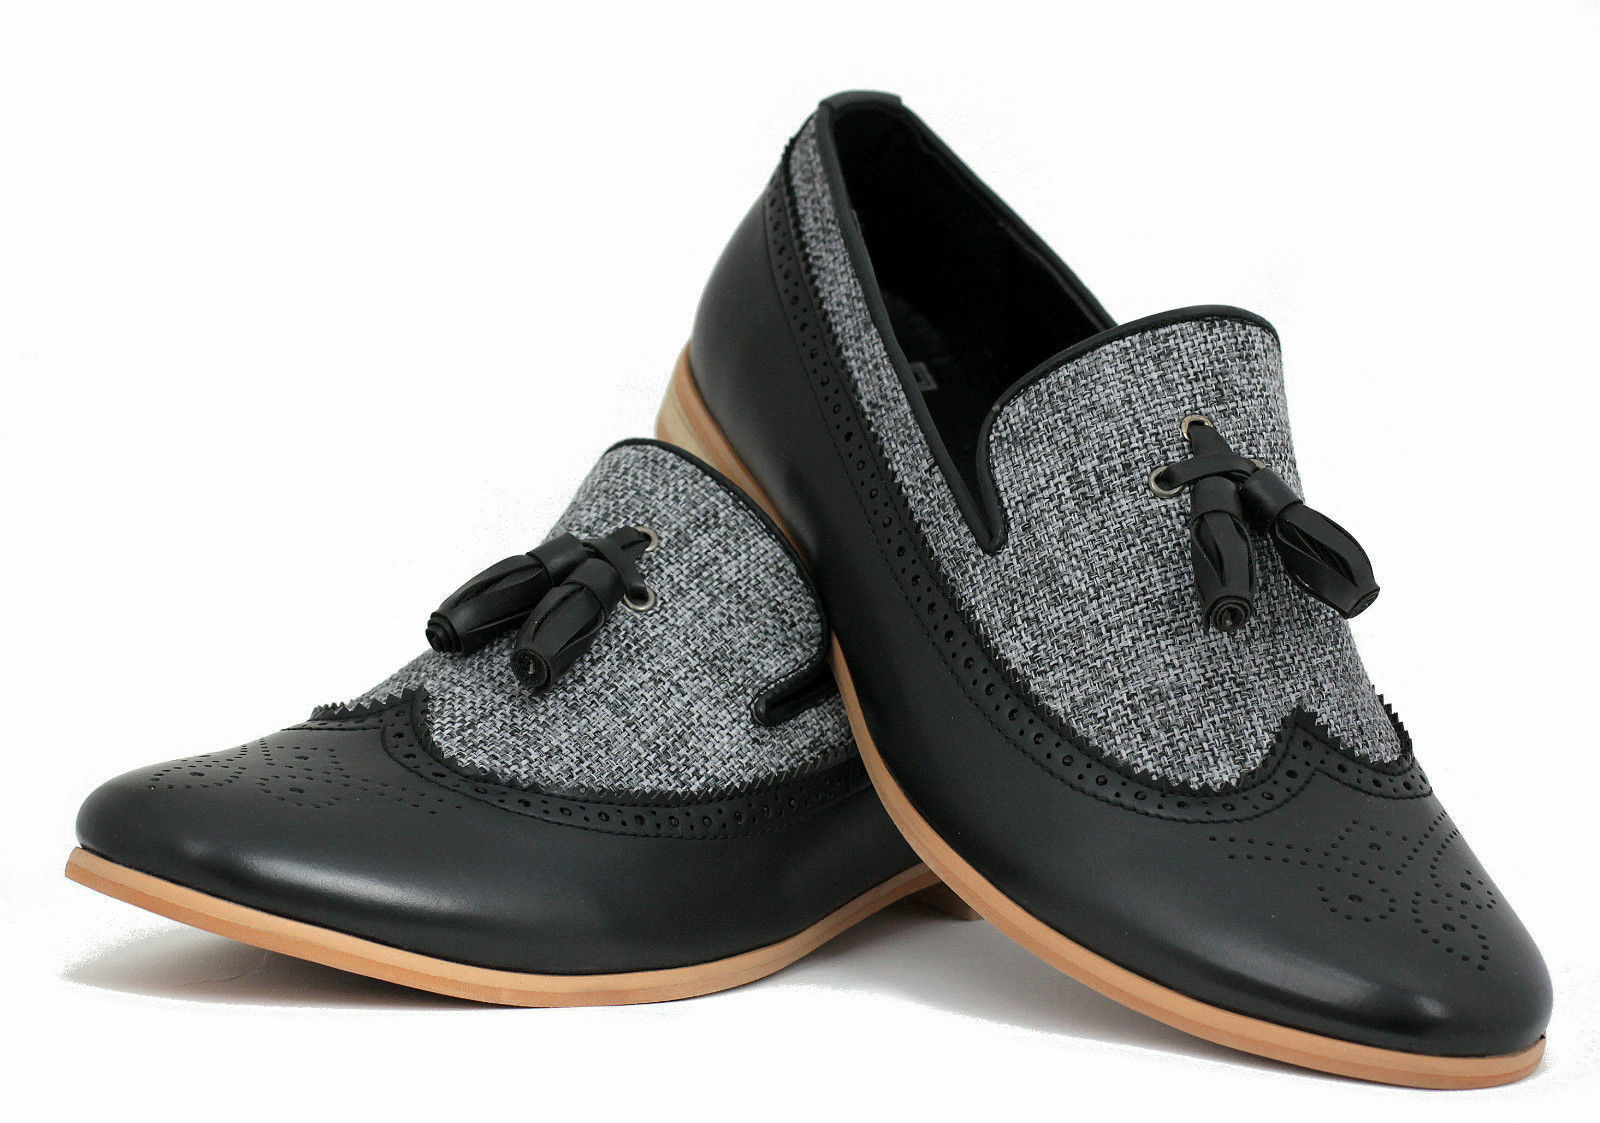 Men Handmade Formal Two Tone Leather And Fabric Oxford Brogue Wingtip Slip Ons